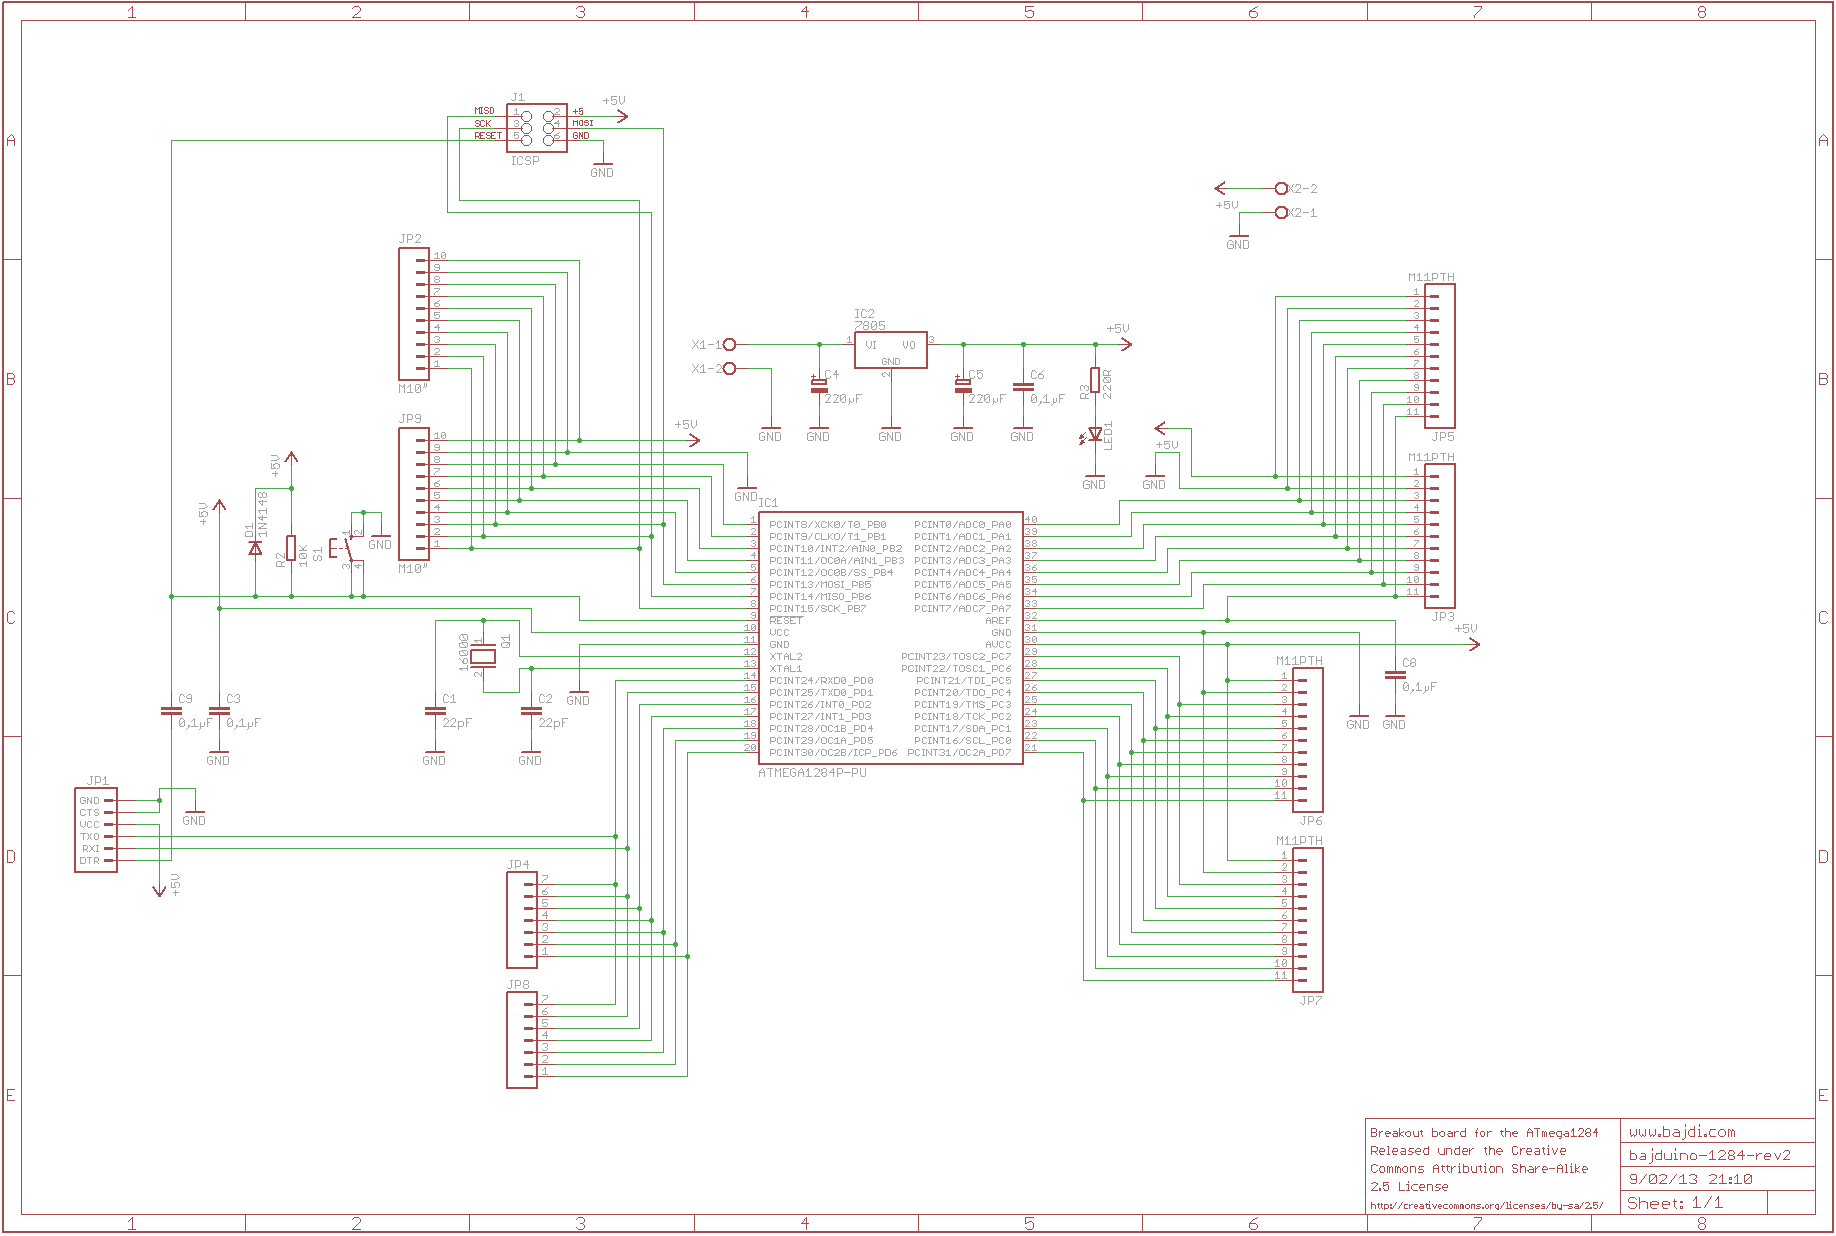 Bajduino 1284 rev2 schematic